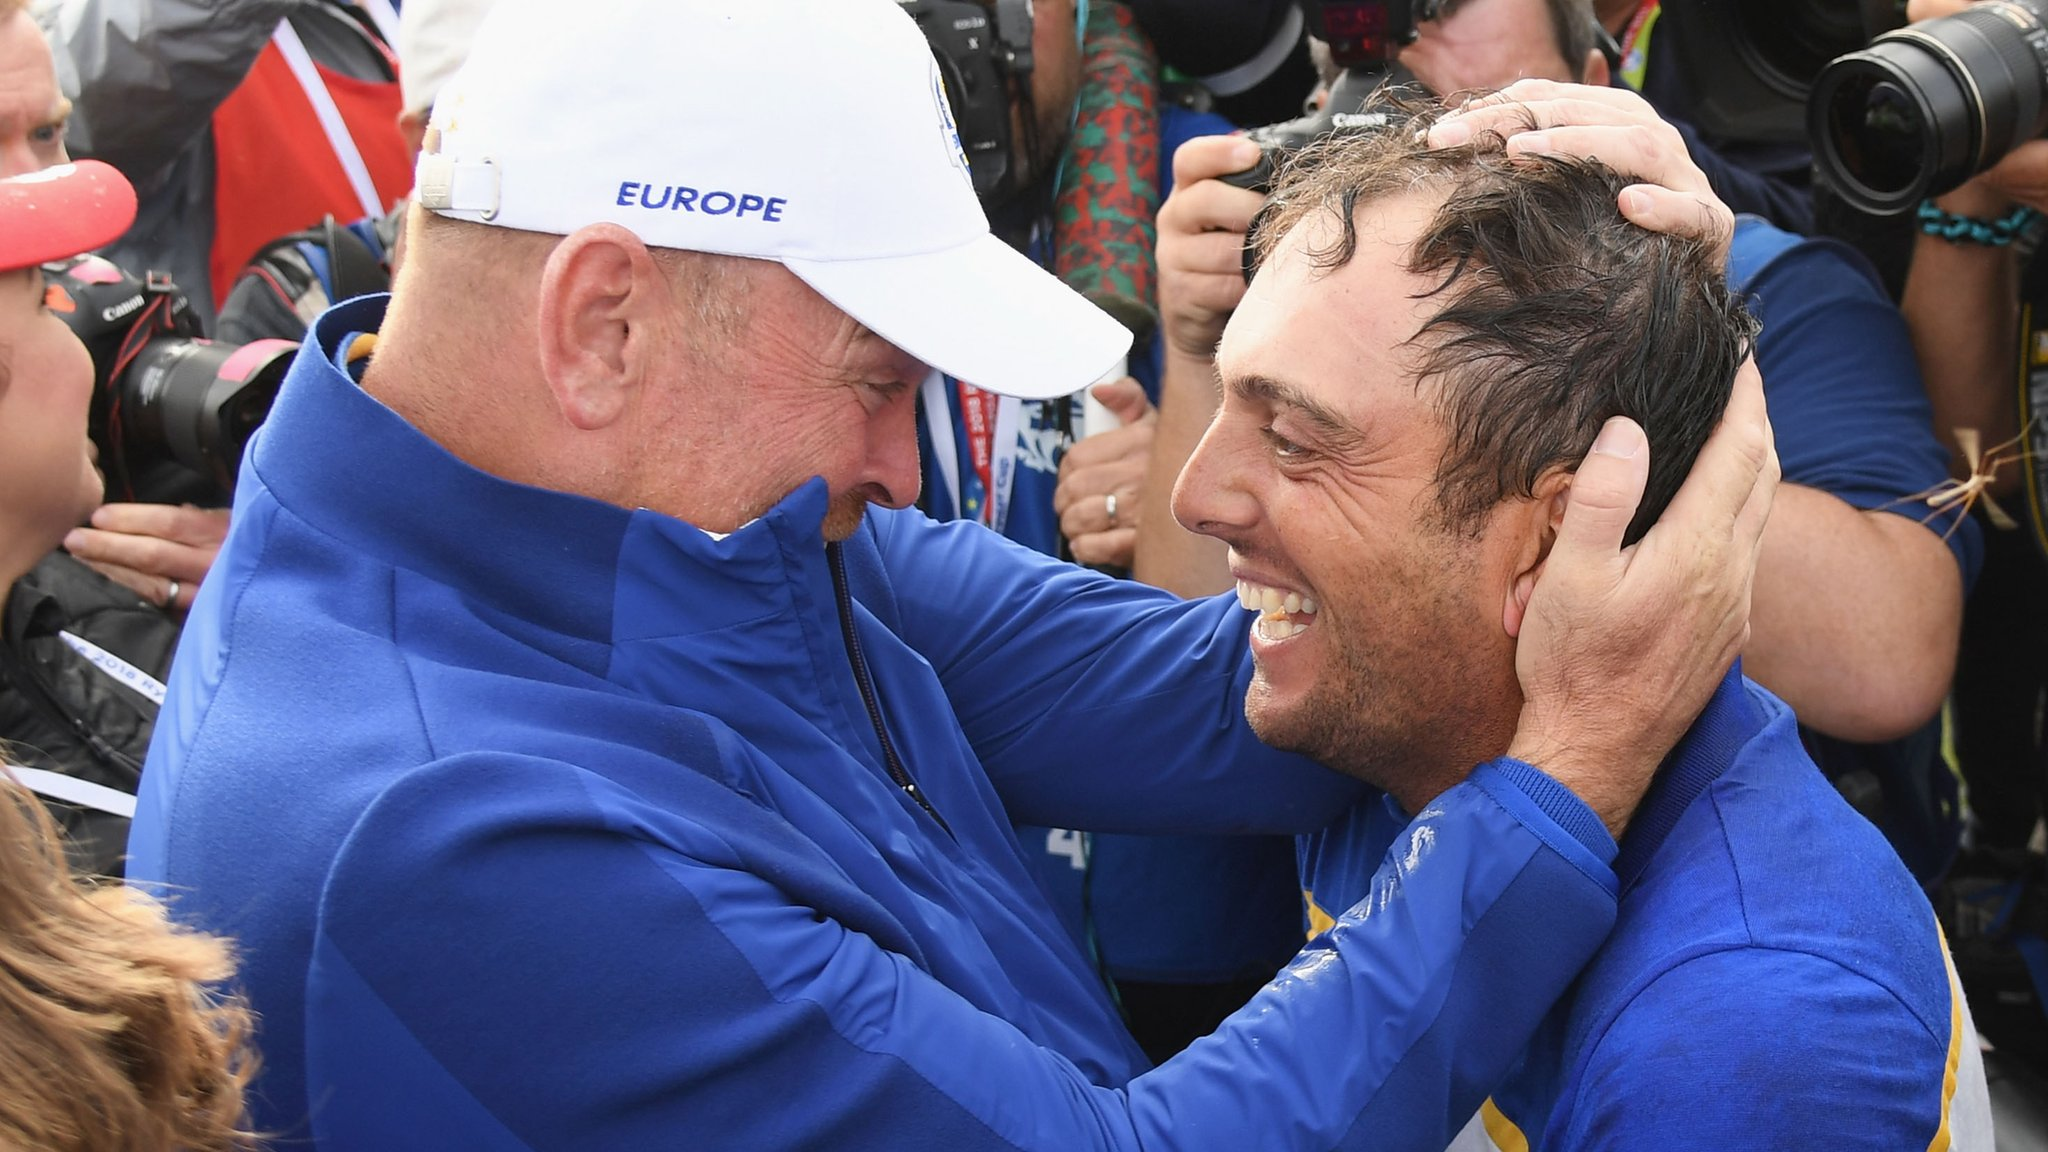 Ryder Cup 2018: Francesco Molinari win secures Ryder Cup victory for Europe